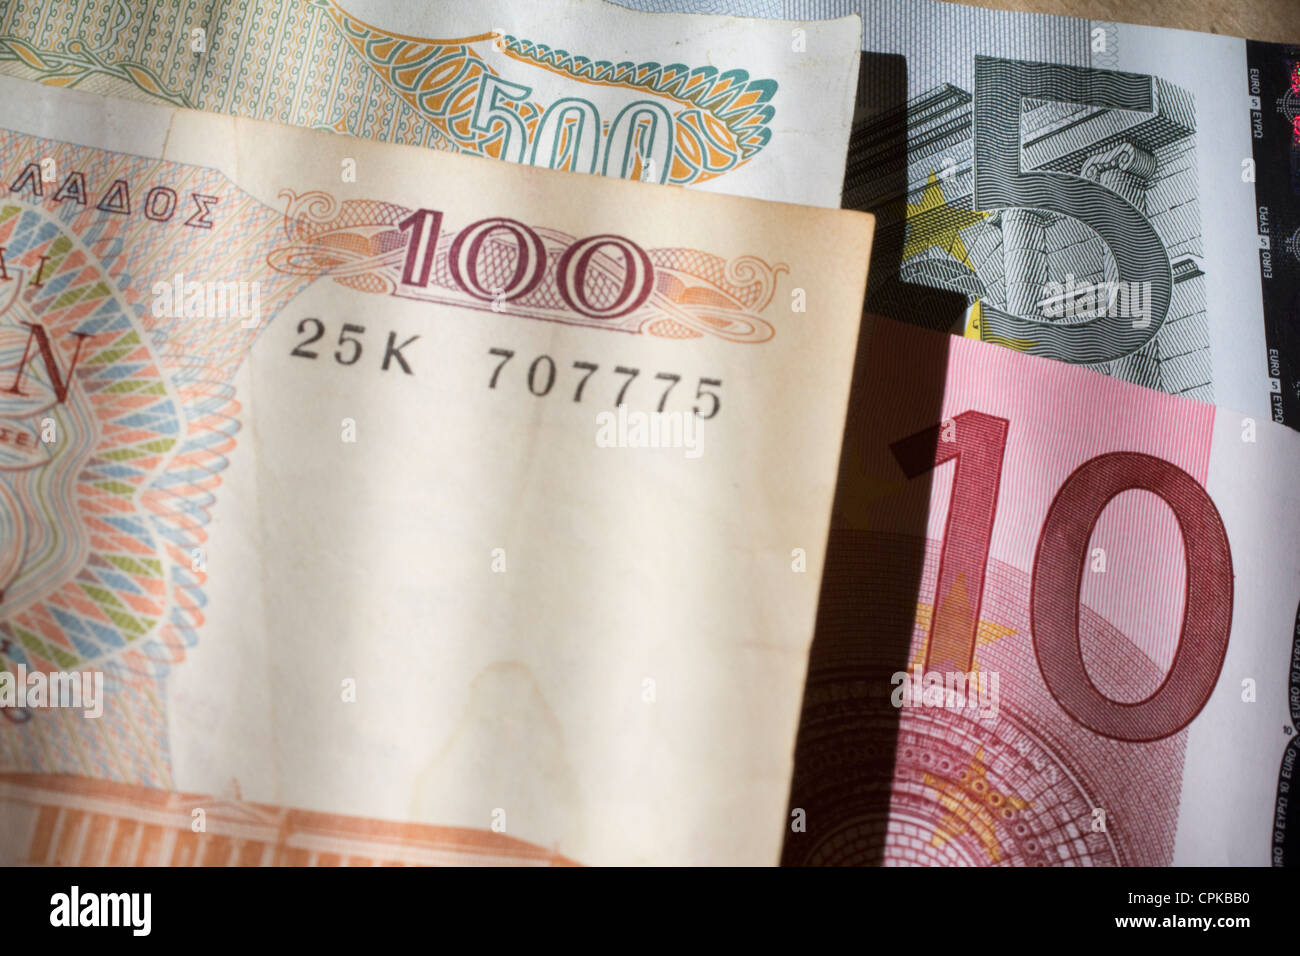 greek currency drachma drachmas previous currency of greece money cash, with euro notes Euros currency of European - Stock Image